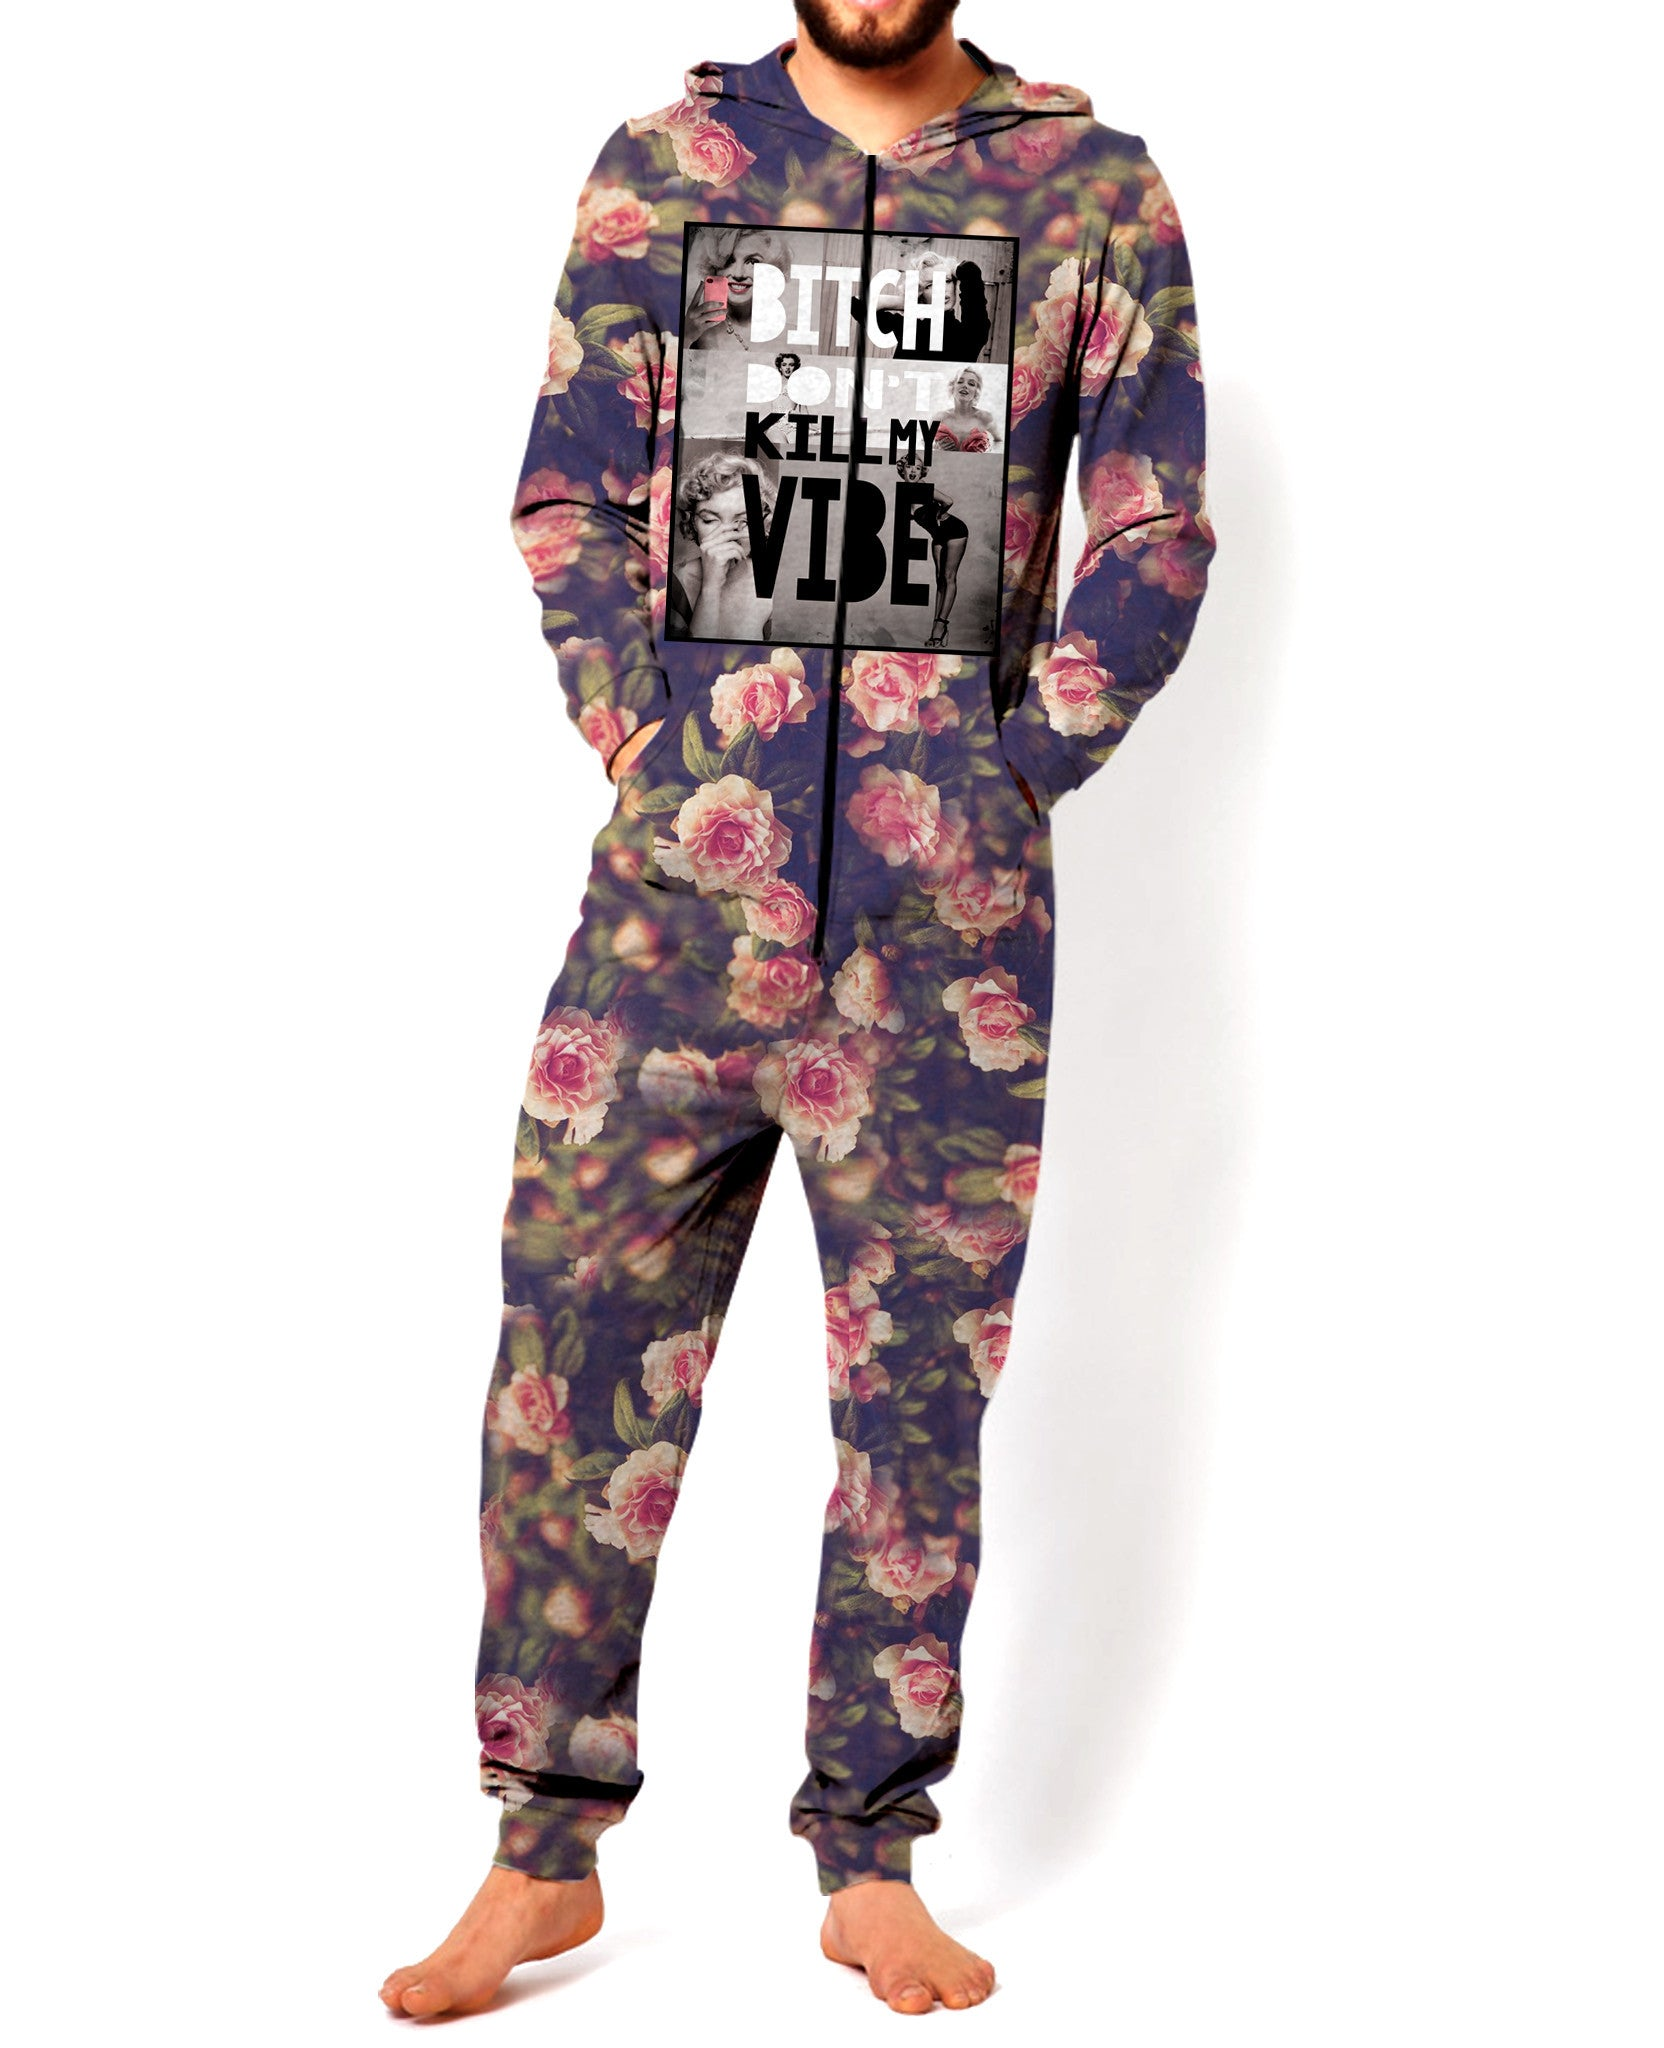 Bitch Don't Kill My Vibe Onesie